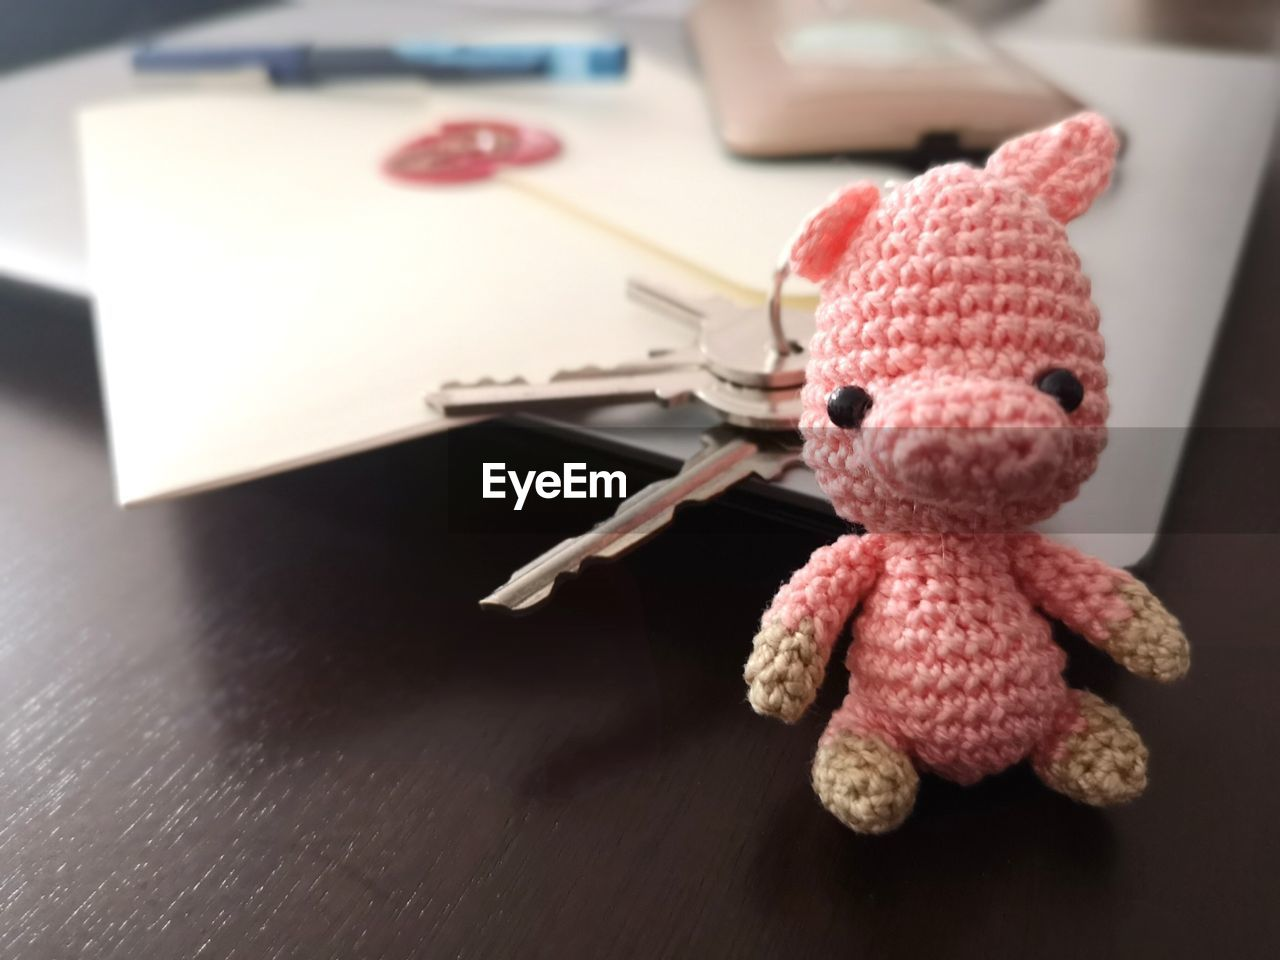 Close-up of woolen toy with papers and keys on table